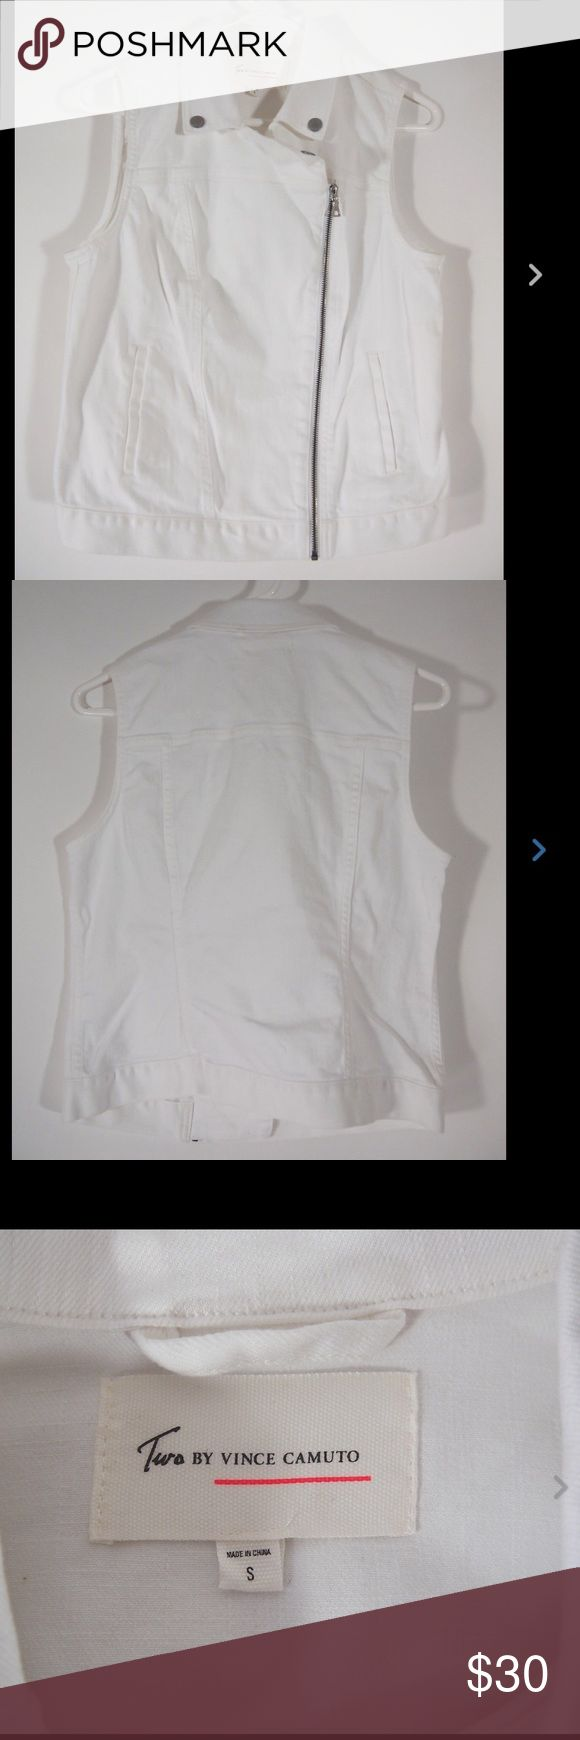 Two Vince Camuto White Denim Jean Moto Vest S Asymmetrical zipper, 99% cotton, 1% spandex.  Like new condition, minimal if any wear. Two by Vince Camuto Jackets & Coats Vests